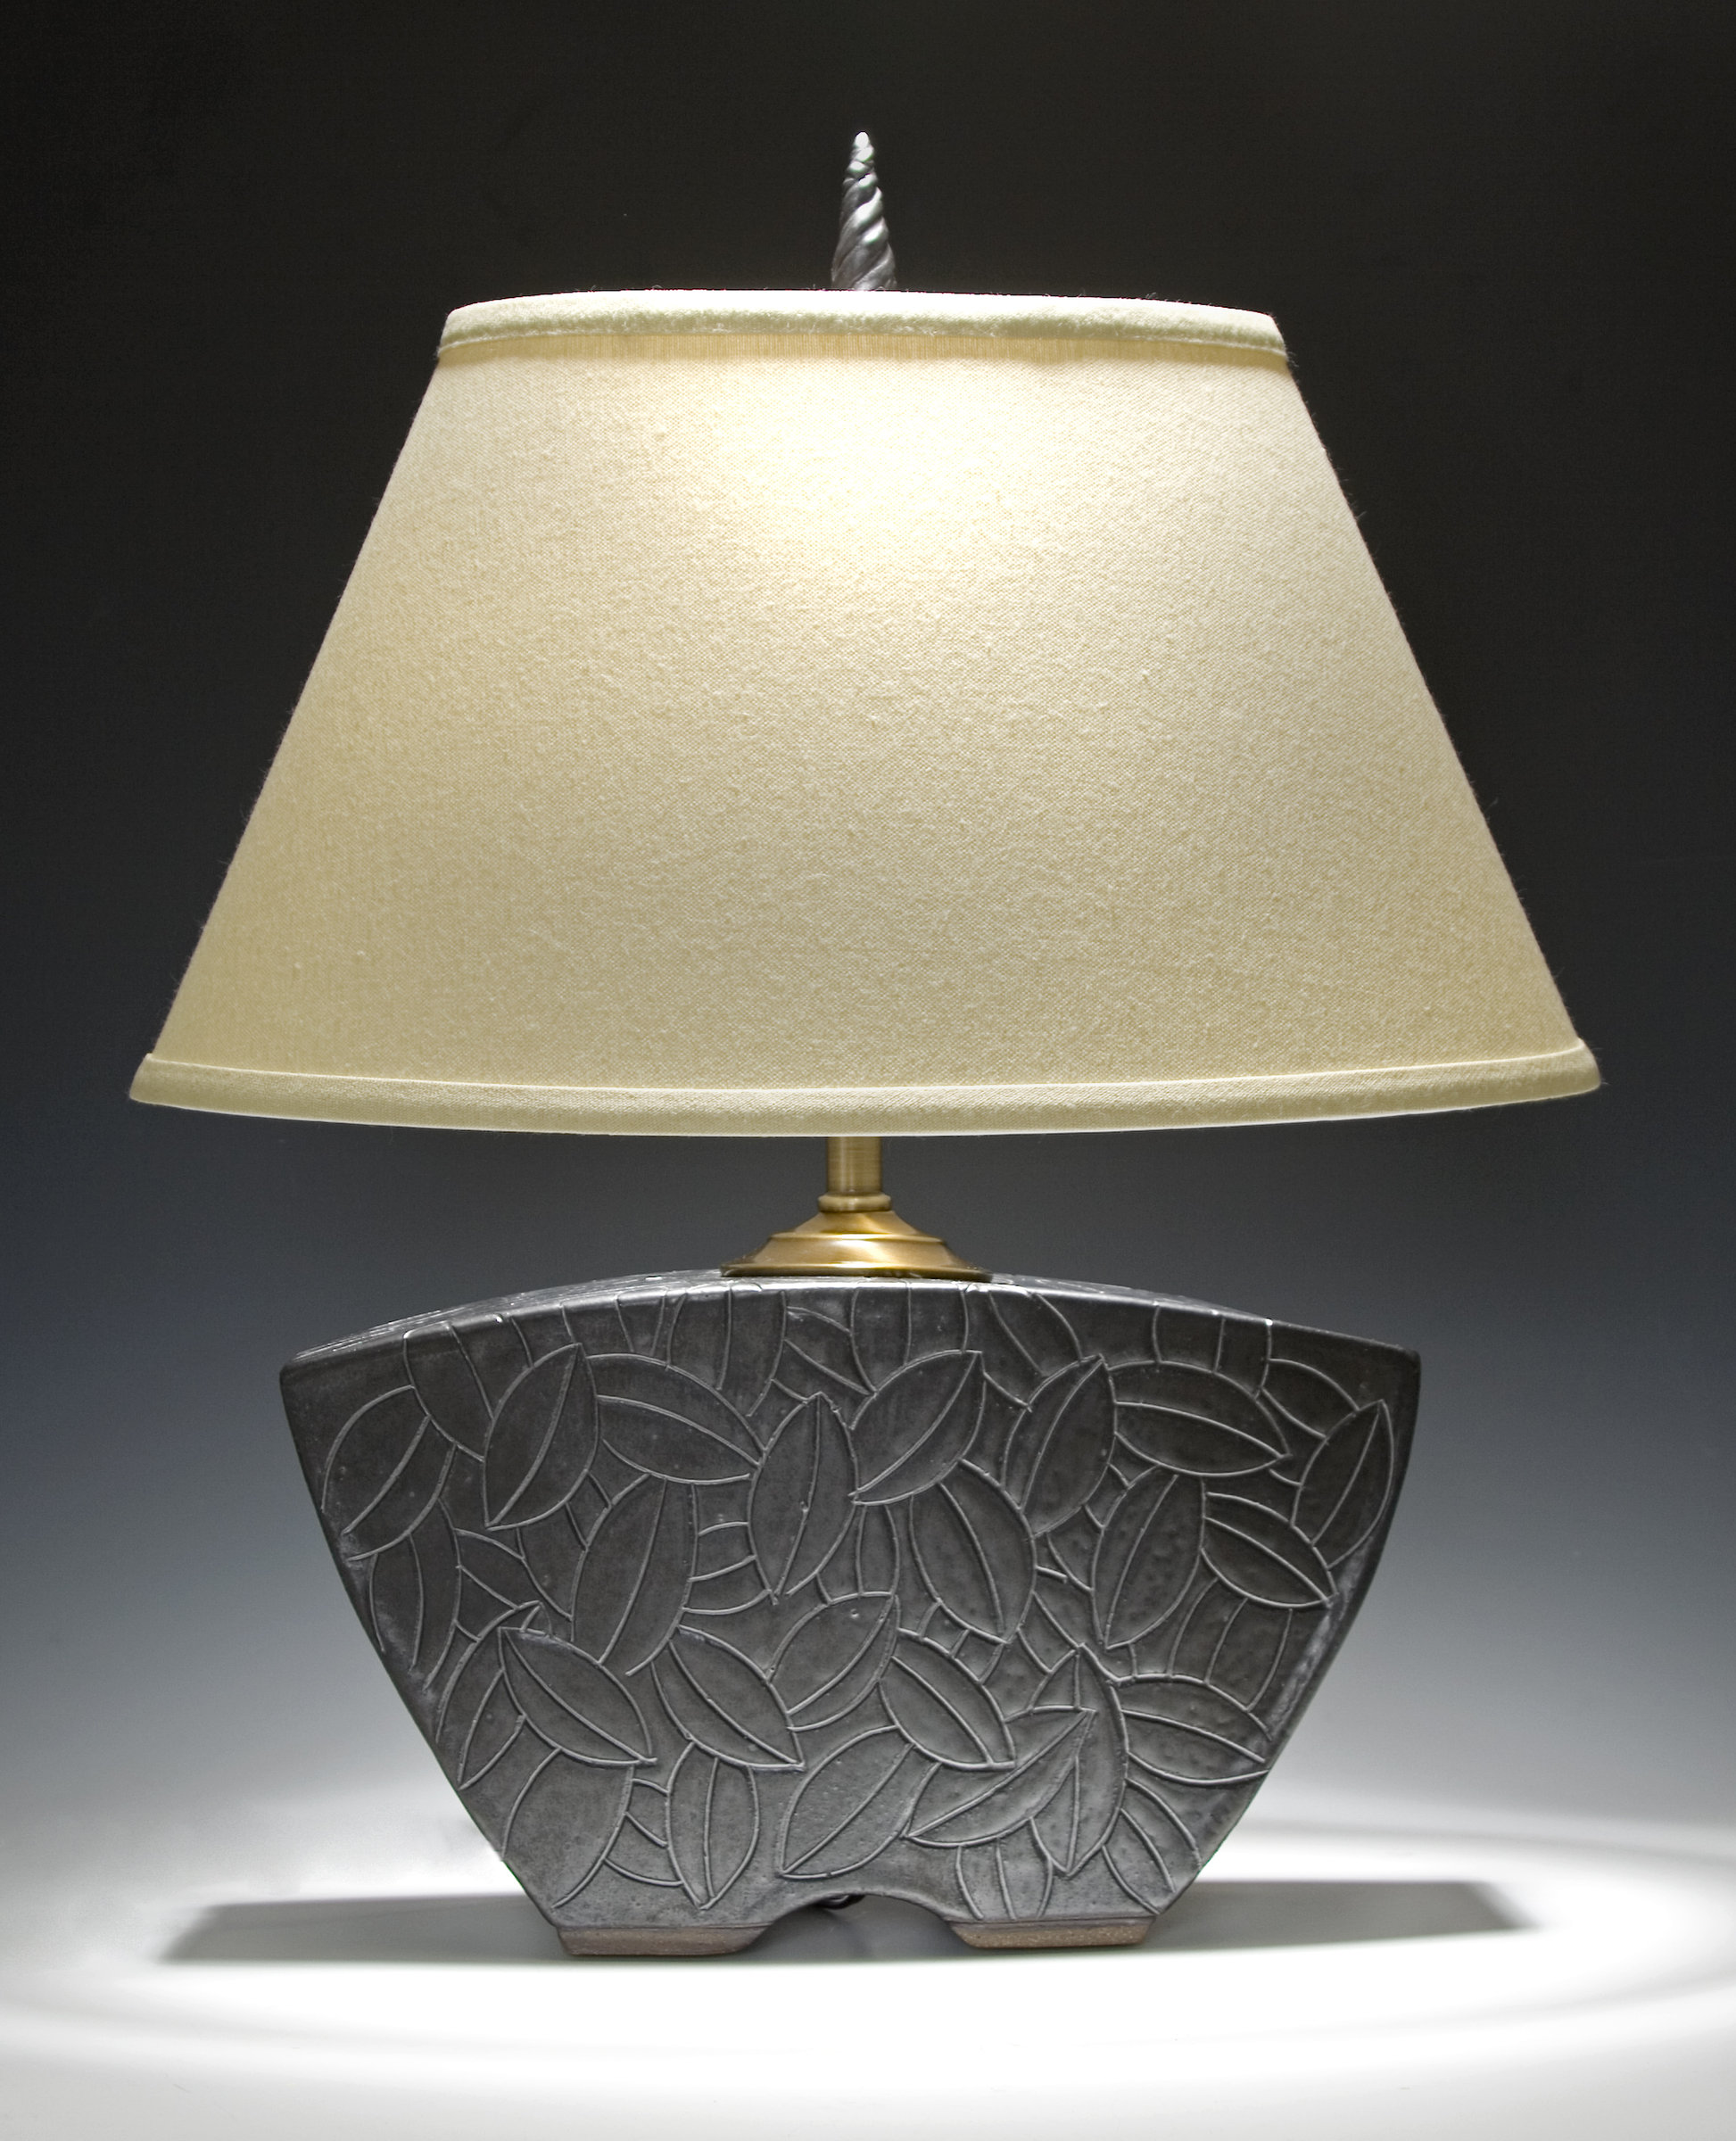 keystone lamp by jim and shirl parmentier ceramic table. Black Bedroom Furniture Sets. Home Design Ideas